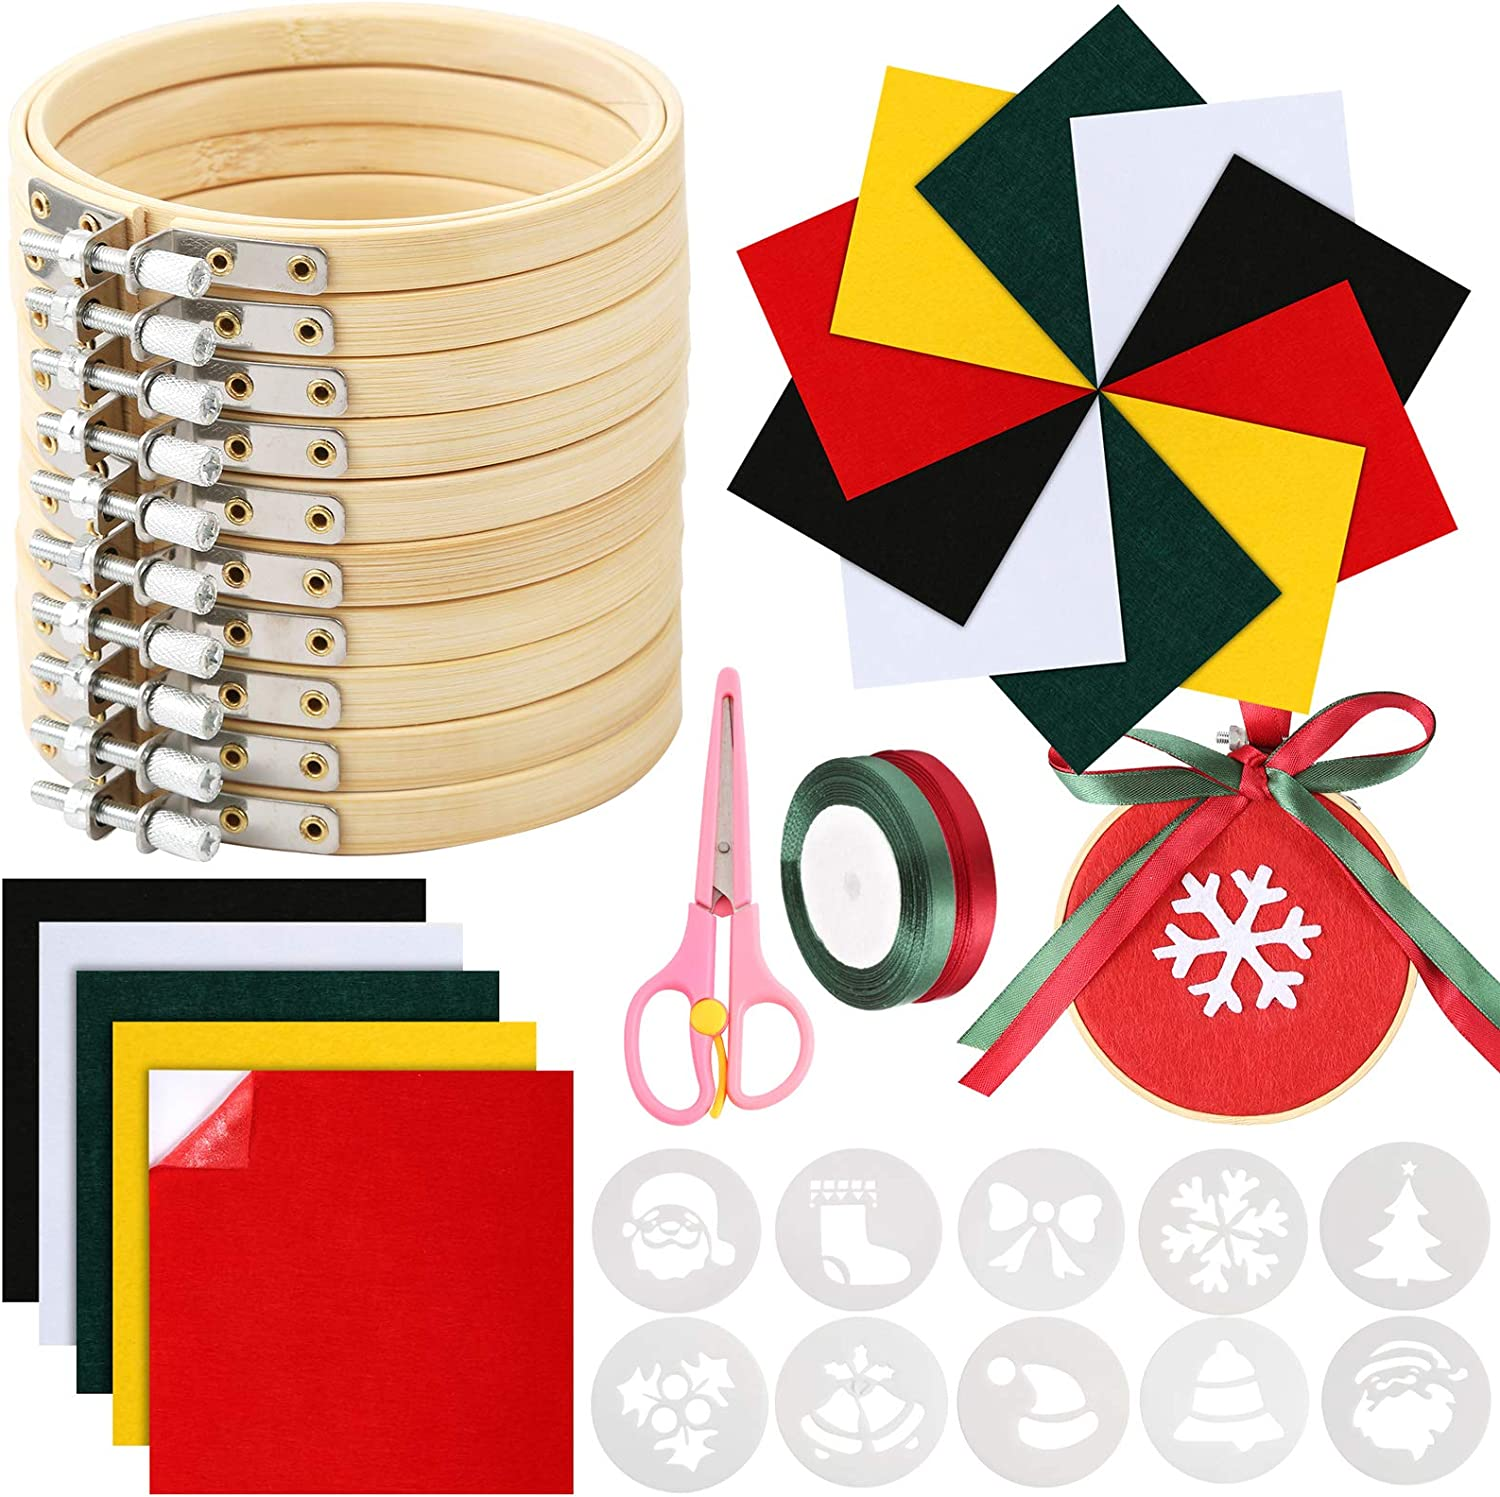 Caydo 38 Pieces Christmas Ornament Kit Including 3 Inch Embroidery Hoop, Needlework Fabric, Satin Ribbon, Cross Stitch Kit for DIY Craft Christmas Decoration